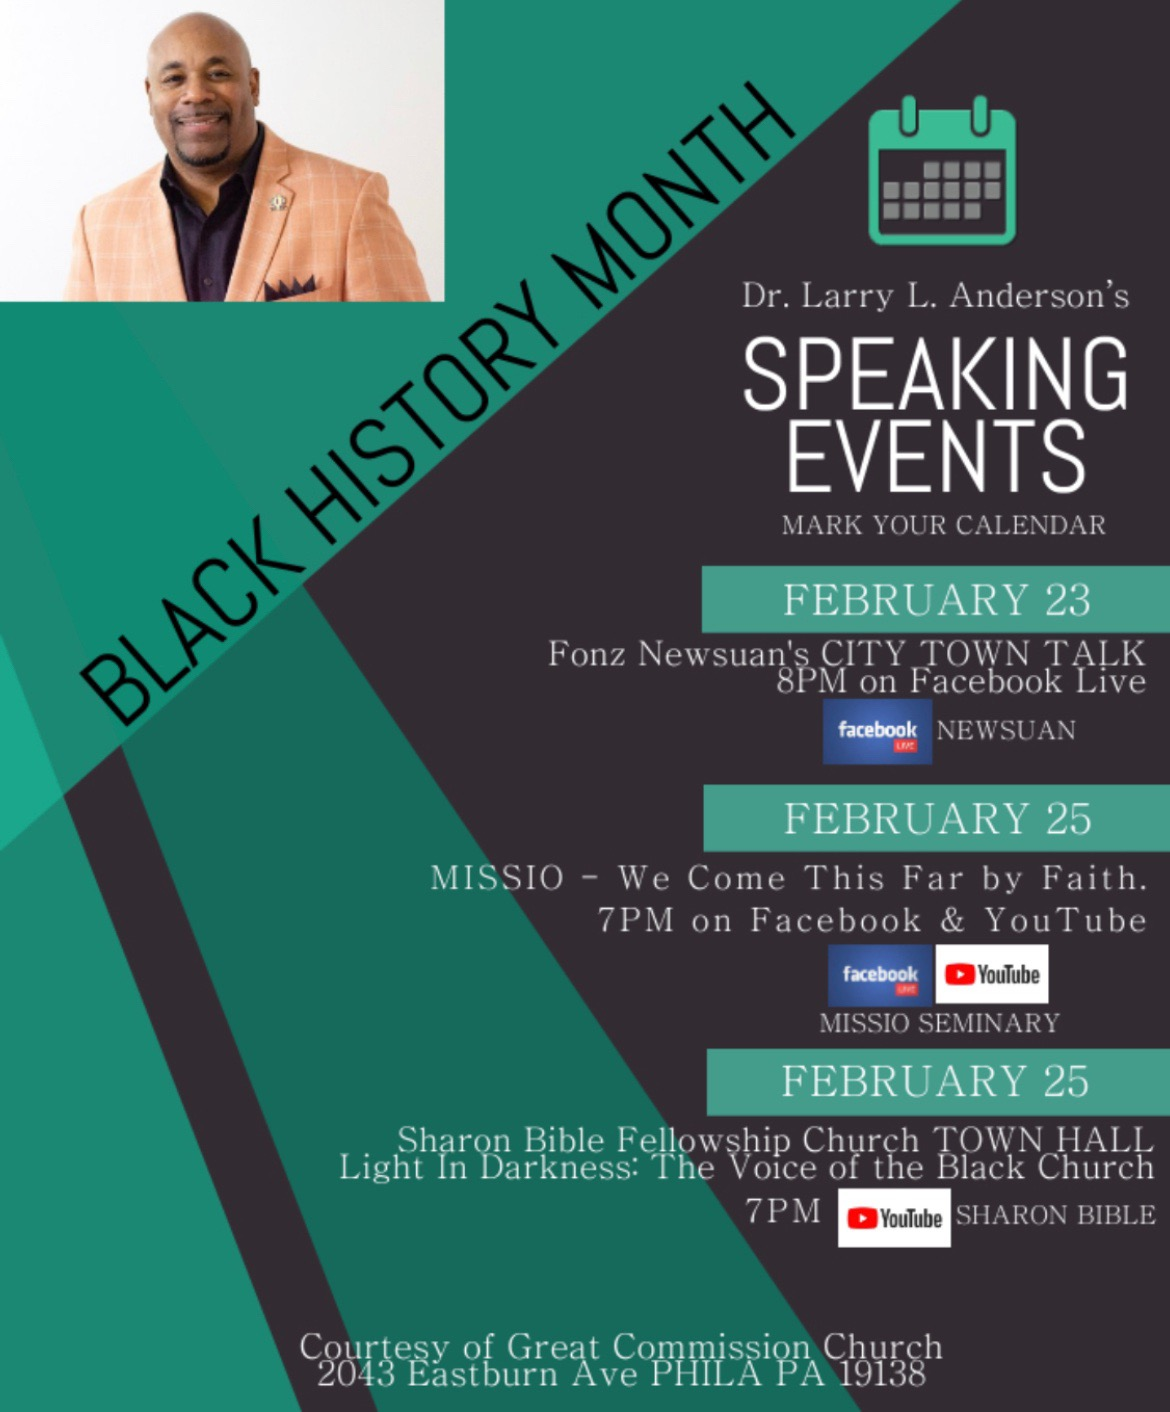 Black History Month: Pastor Larry L. Anderson's Speaking Engagements